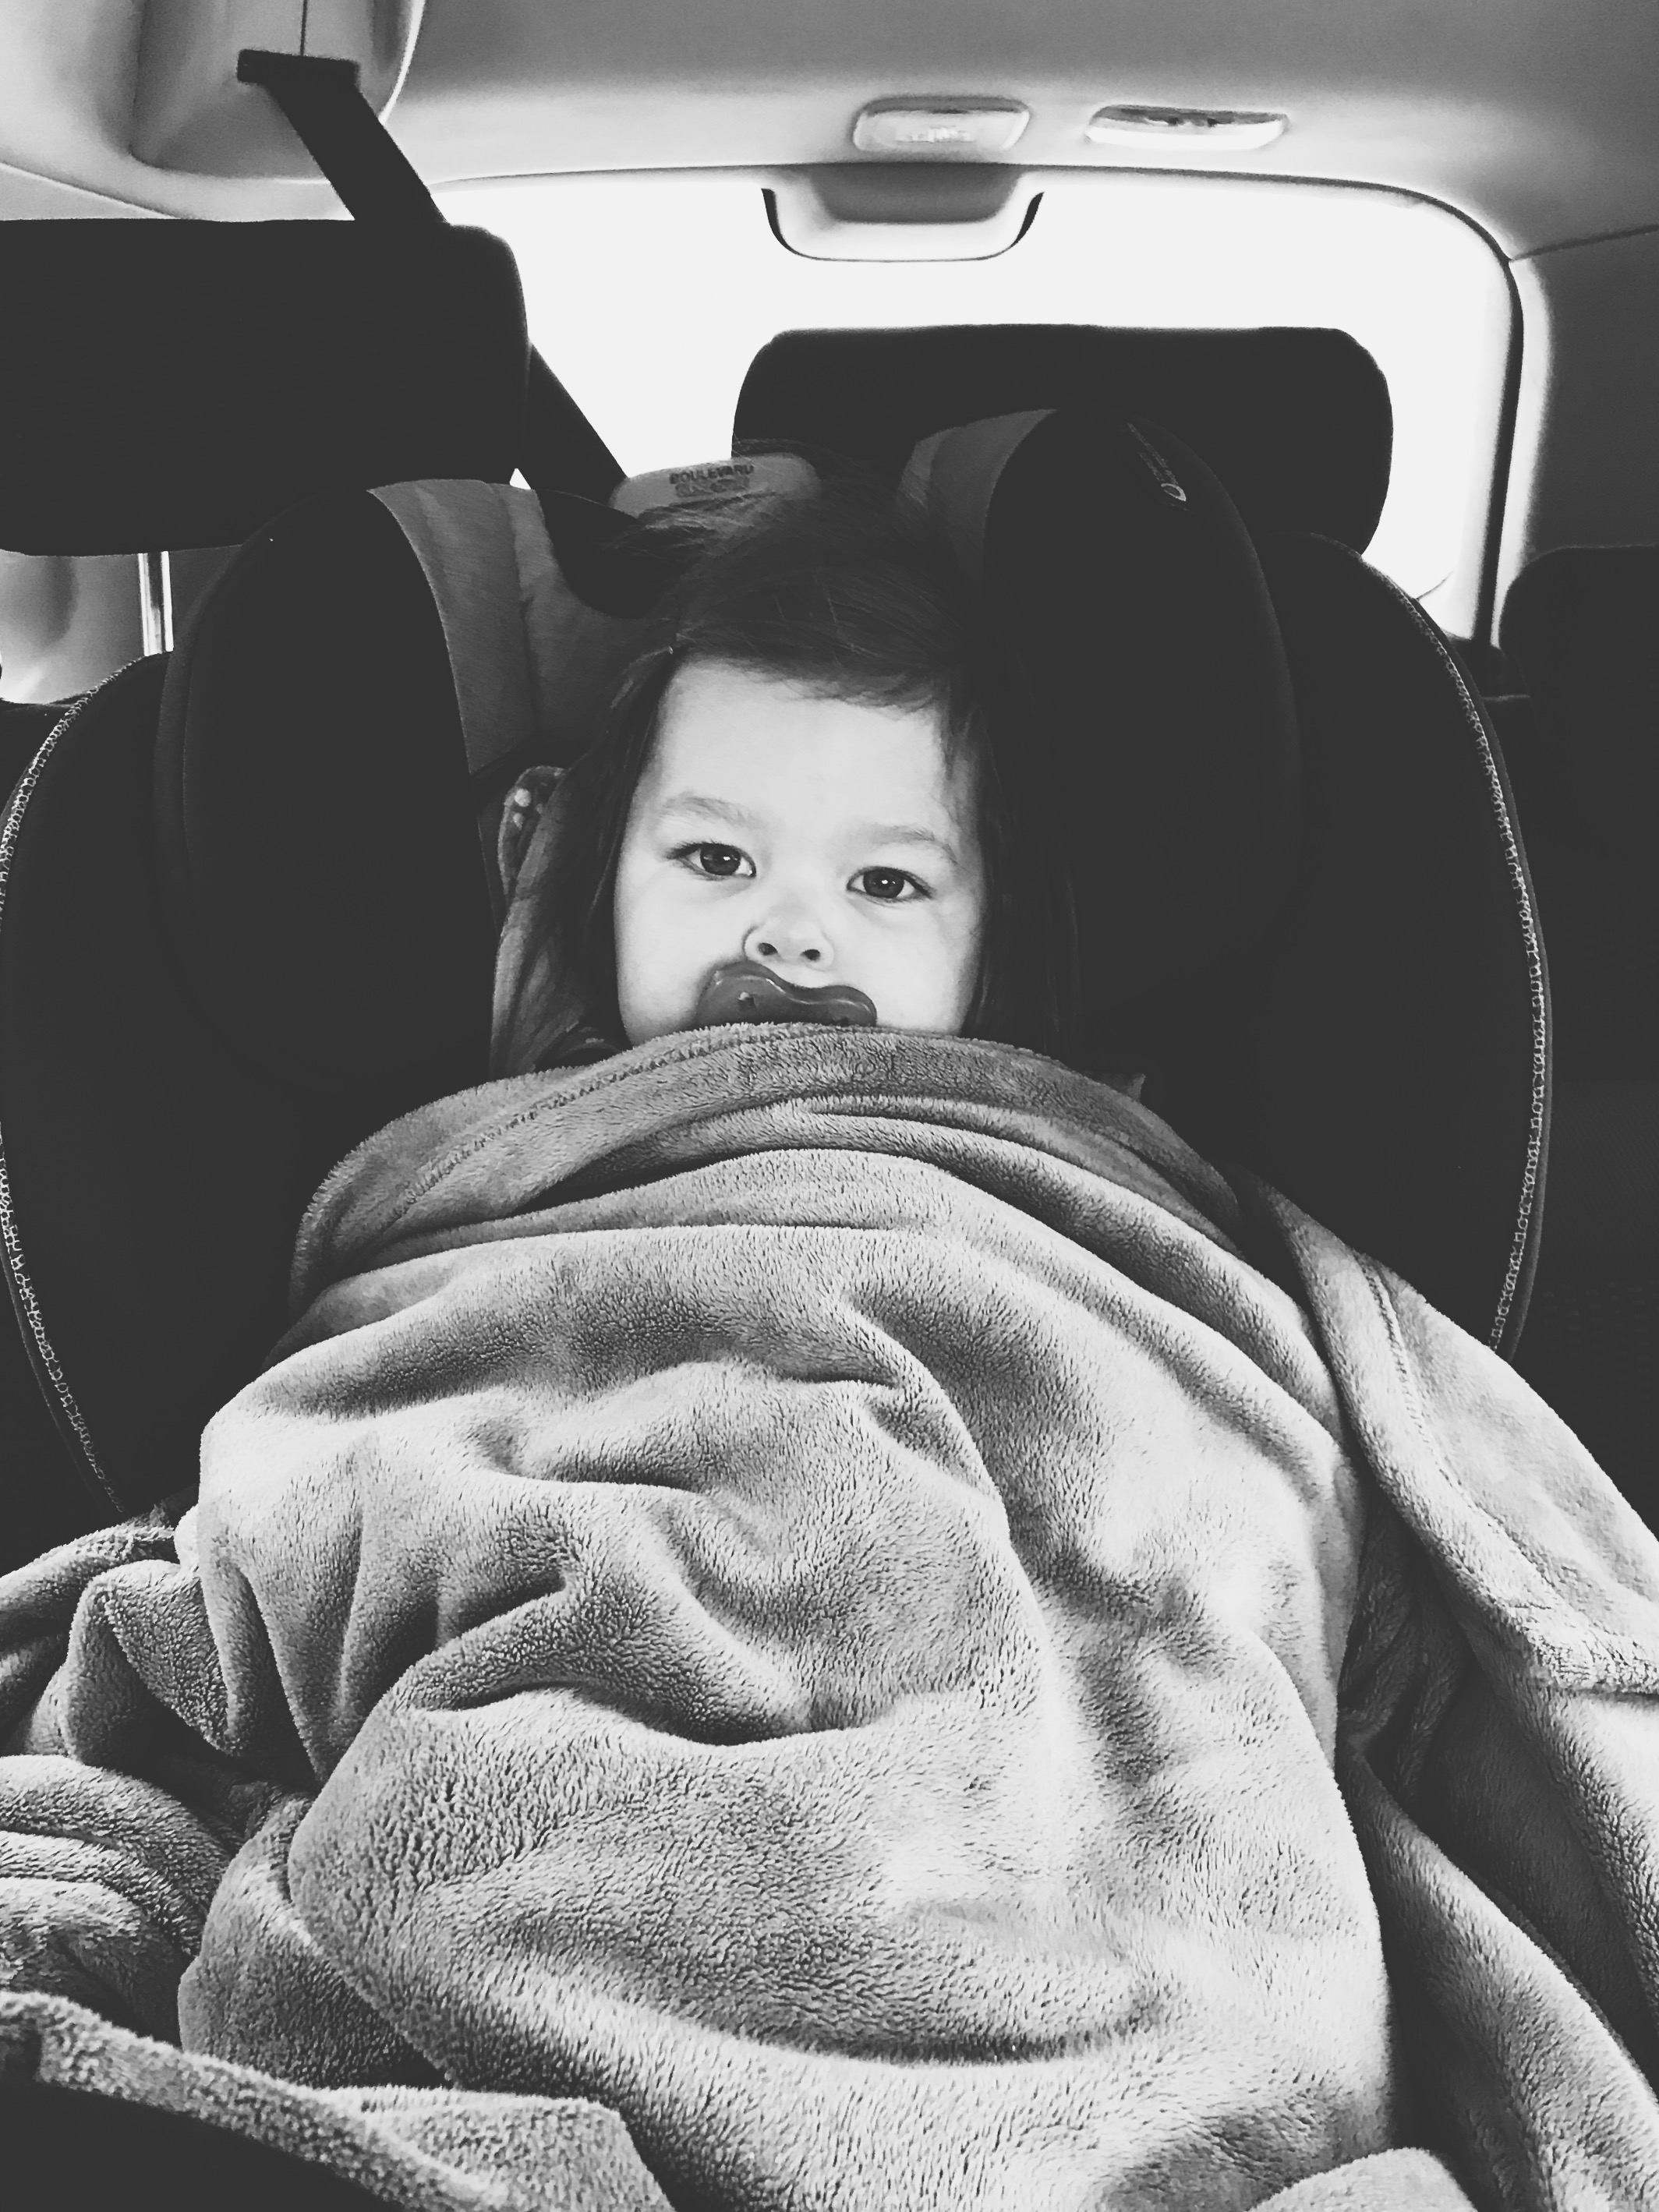 We are still trying to figure out how to keep warm enough in the car as they're not supposed to wear puffy jackets in the car seat